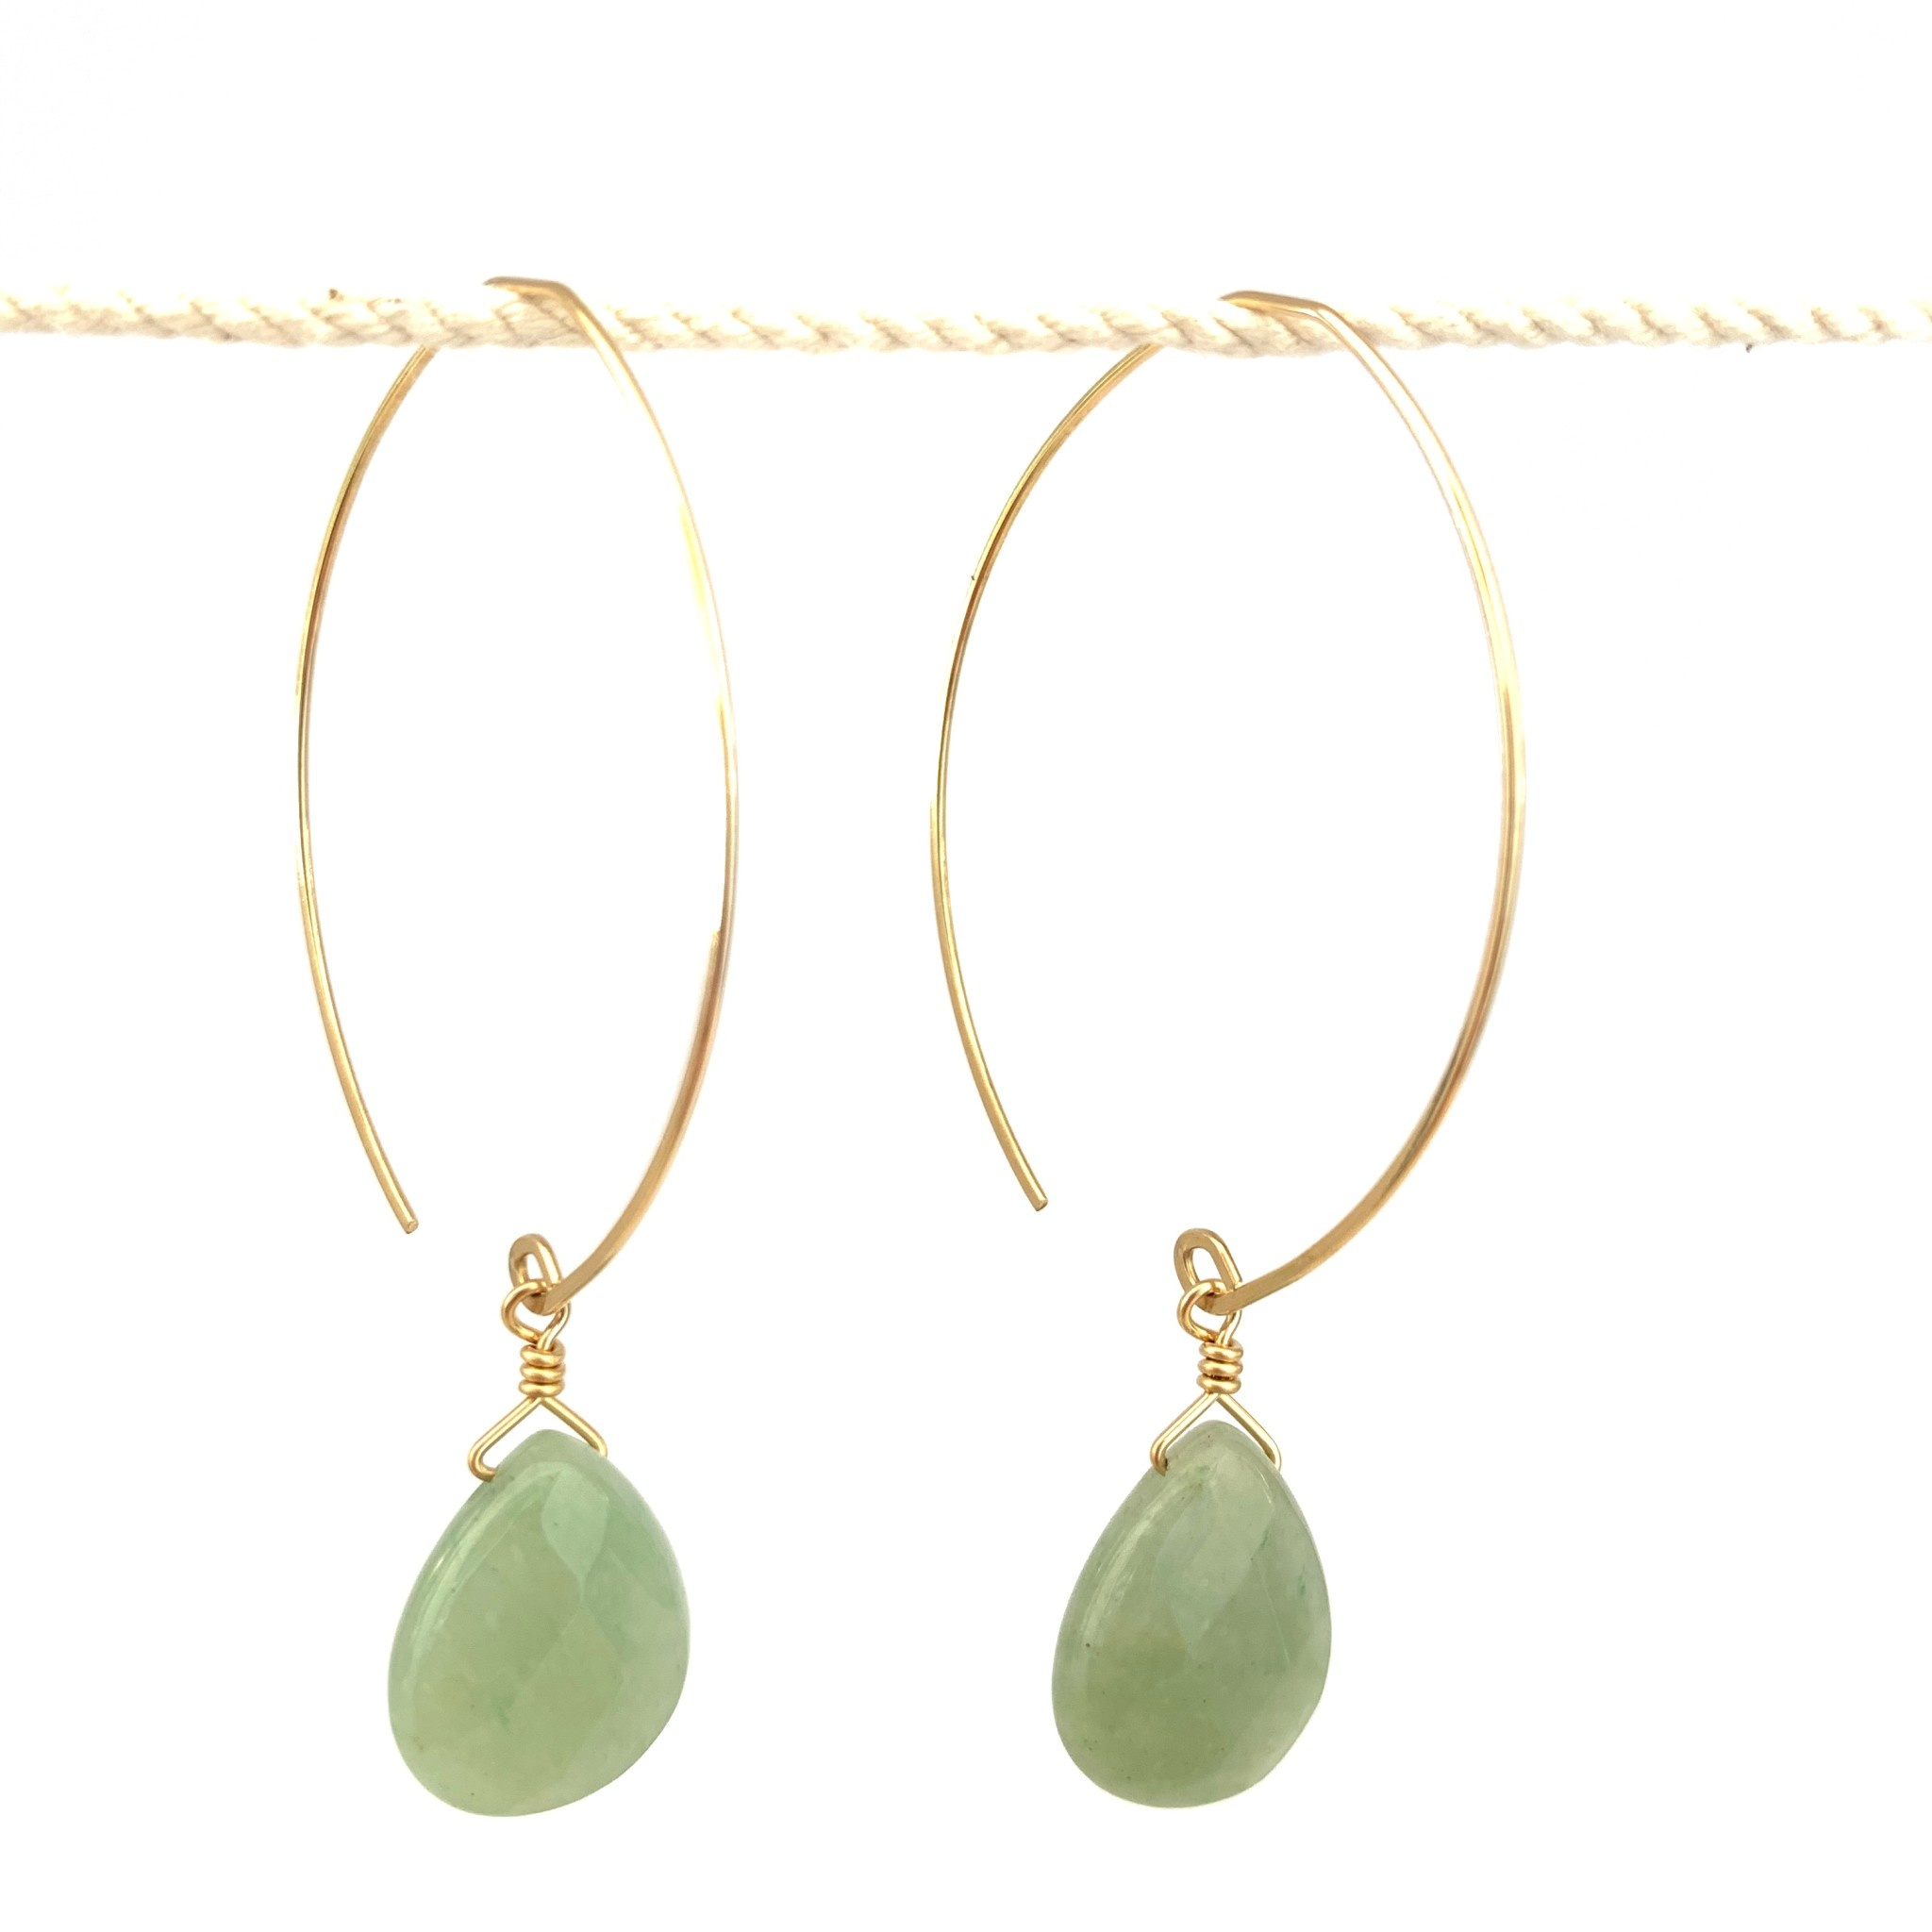 Noon Jewelry Core Collection Earrings - 14k gold fill